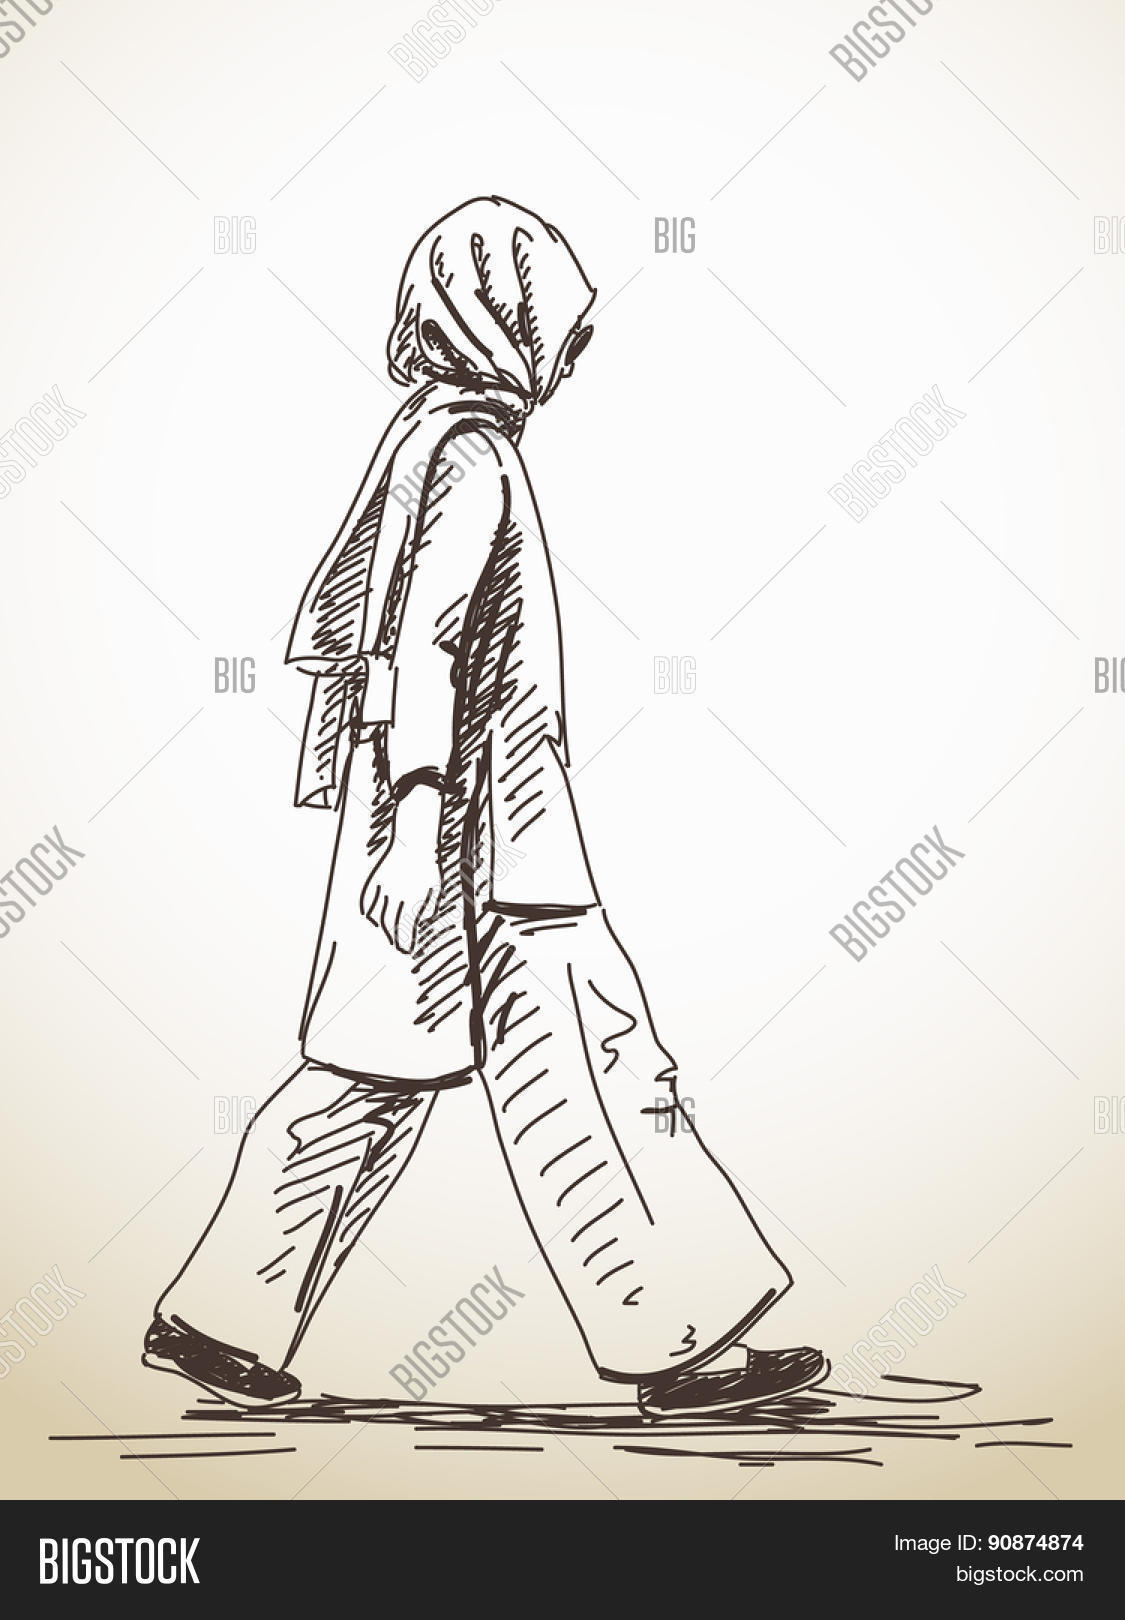 Sketch of walking muslim woman hand drawn illustration